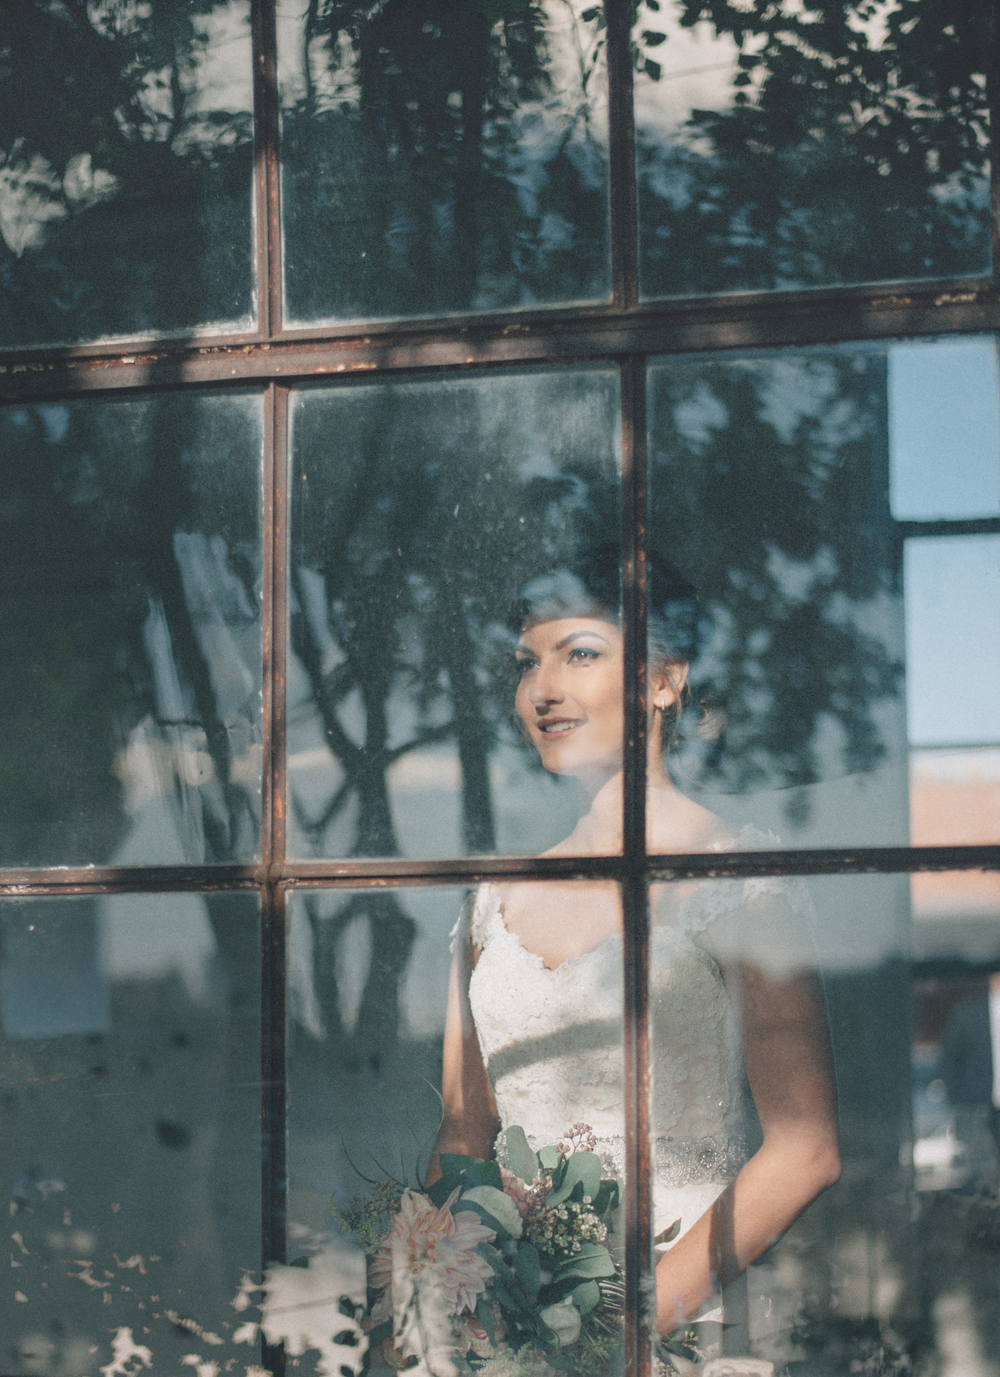 Bride Looking out Window Hickory Street Annex